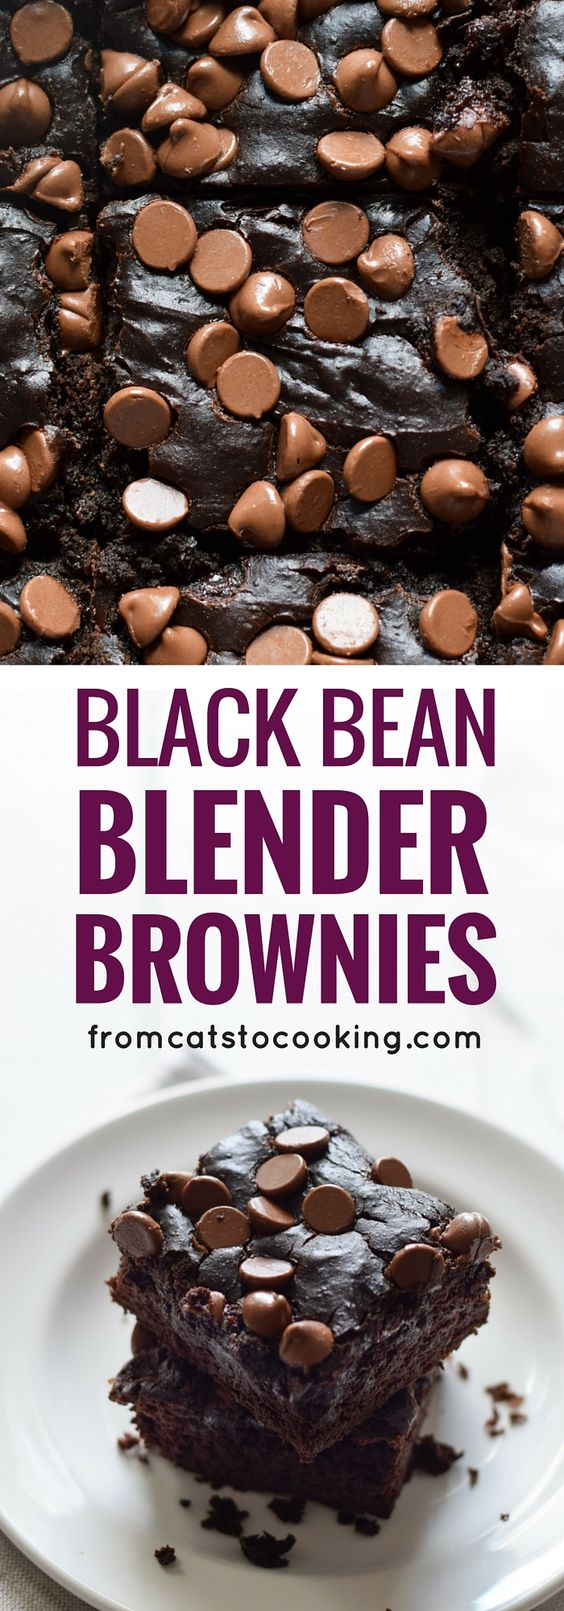 Made with a hint of cinnamon, these Mexican Black Bean Blender Brownies are chocolatey, easy to make and are completely flourless. All you need is a can of black beans!  Seriously one of the best dessert recipes ever! (Gluten free, Vegetarian, Grain Free)